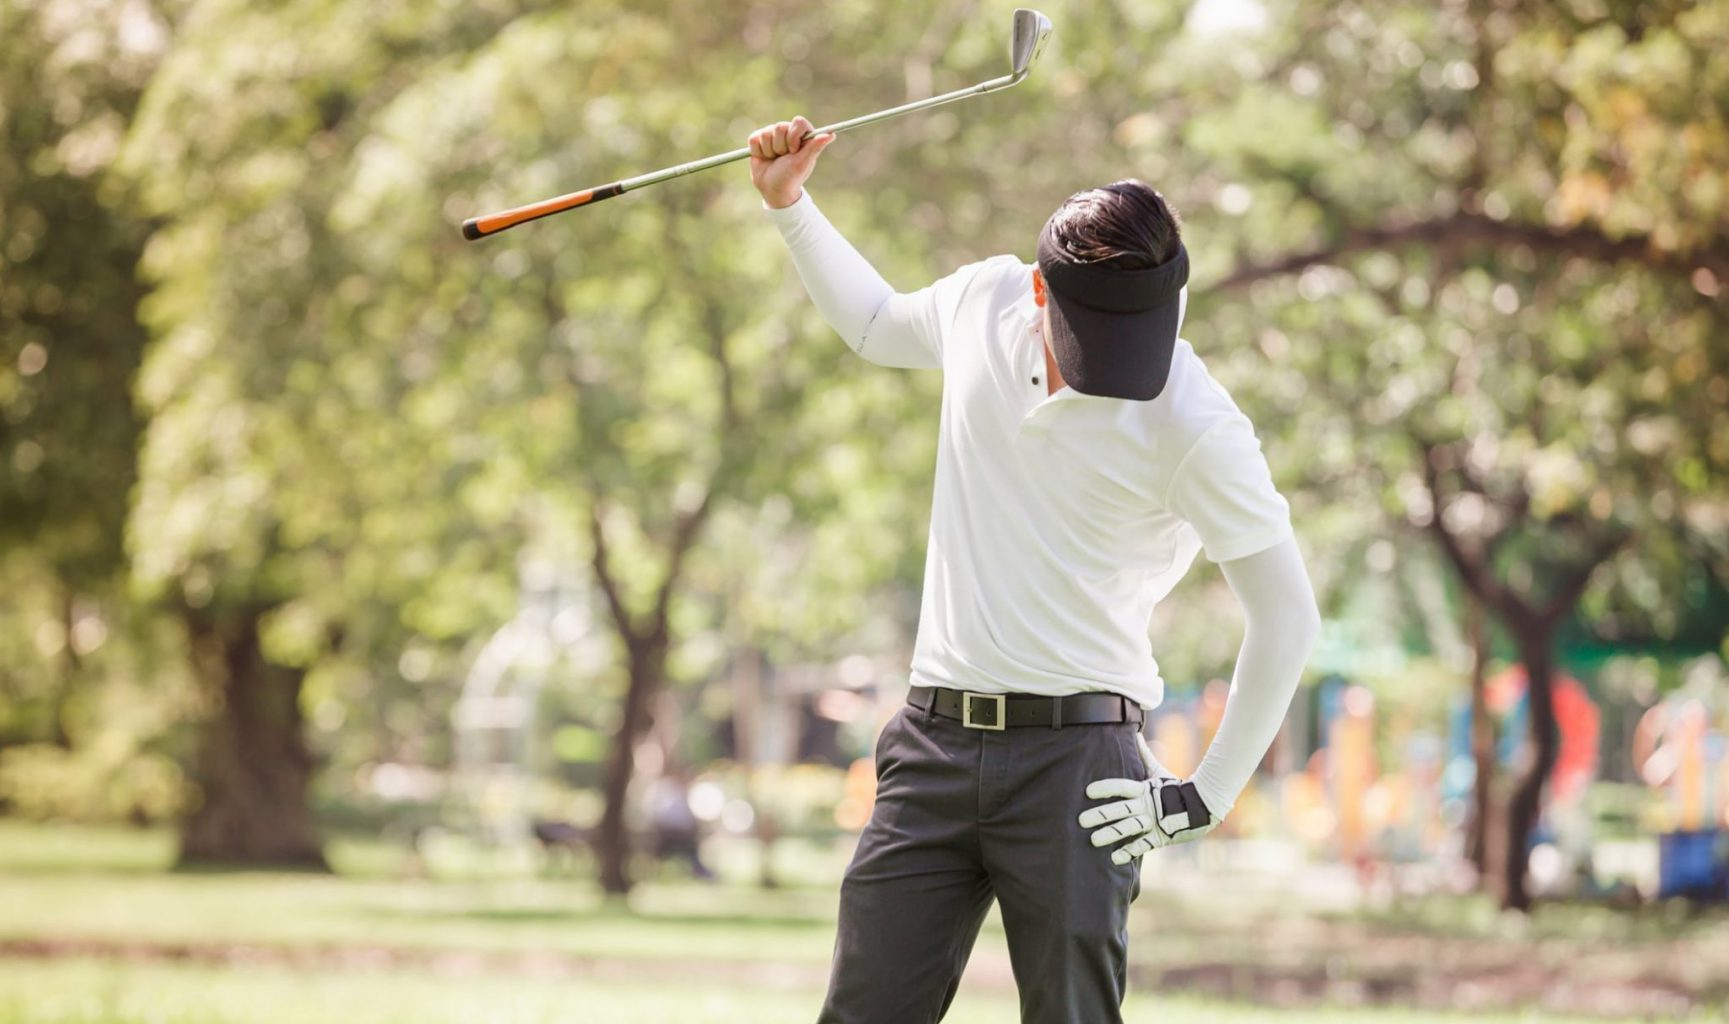 Golf Psychology When Angry